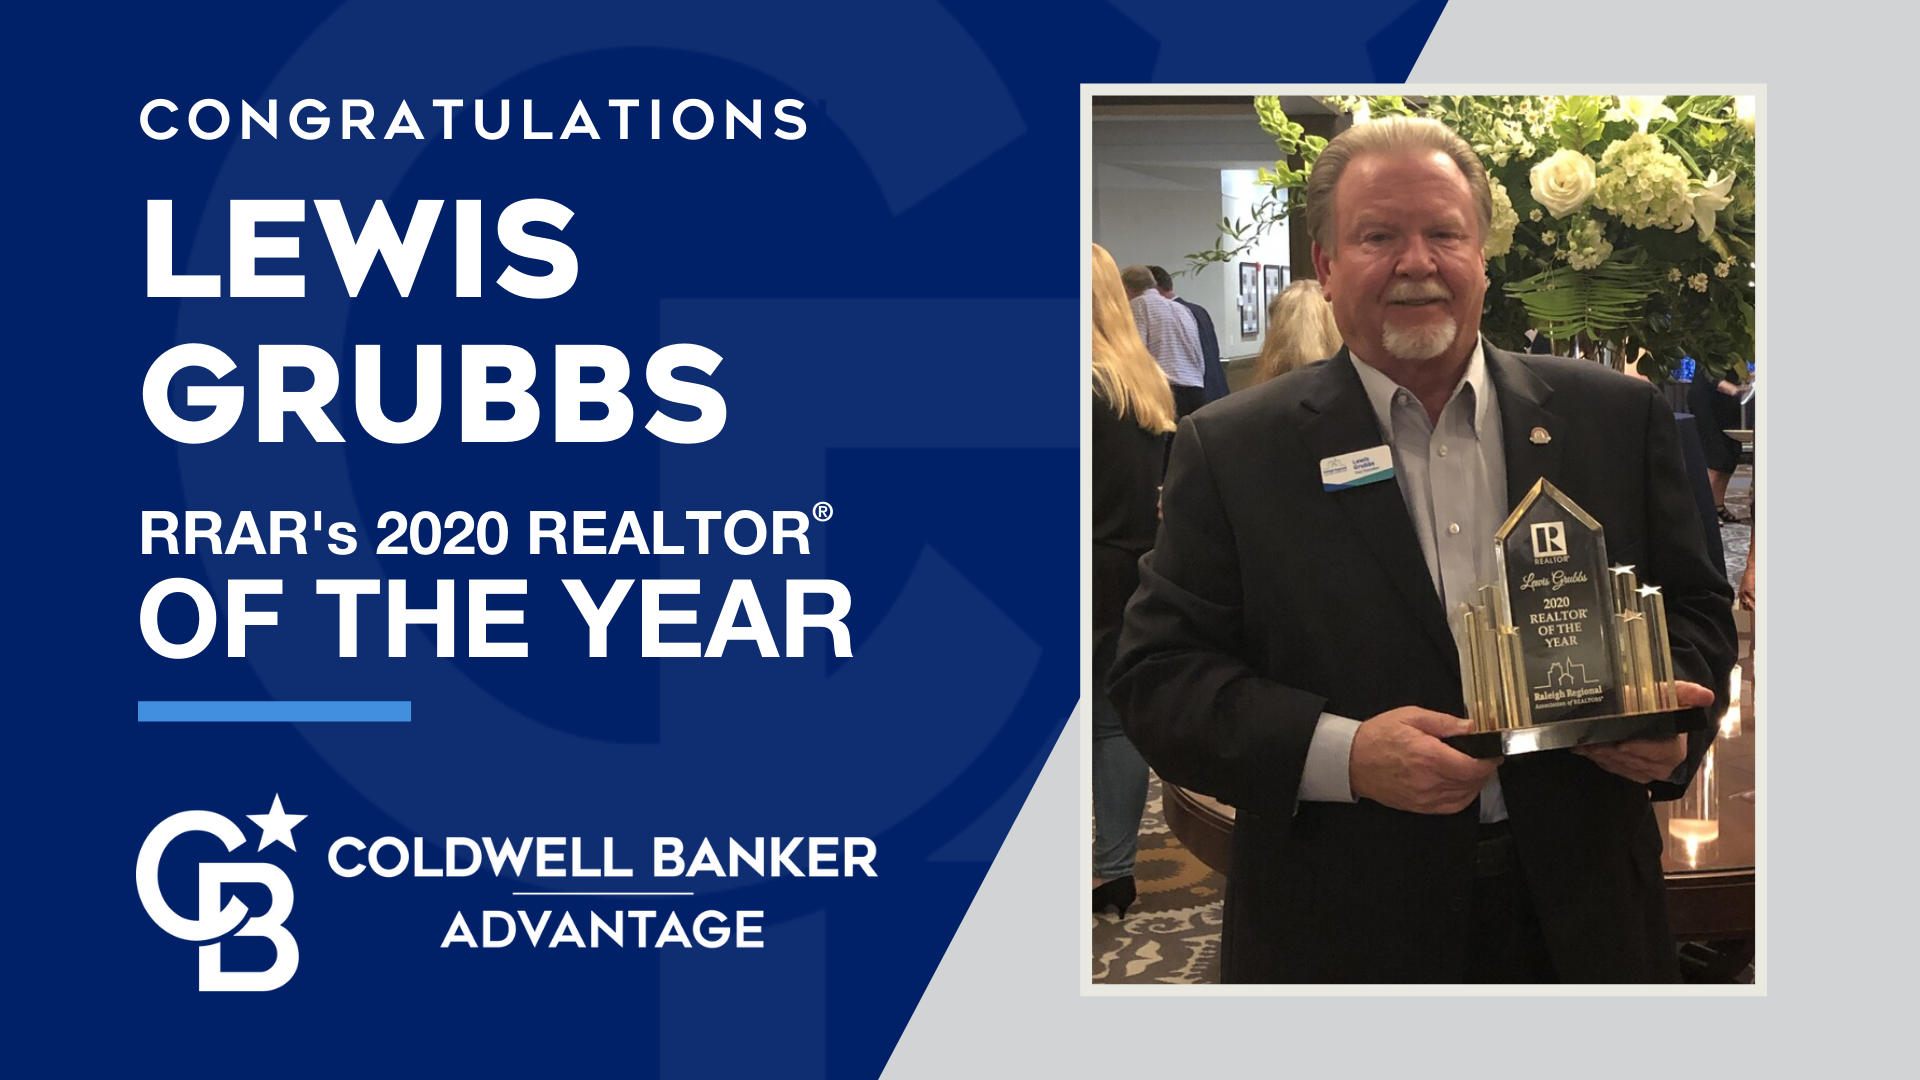 Senior Vice President of Coldwell Banker Advantage Lewis Grubbs has been named RRAR'S 2020 REALTOR® of the Year! Picture